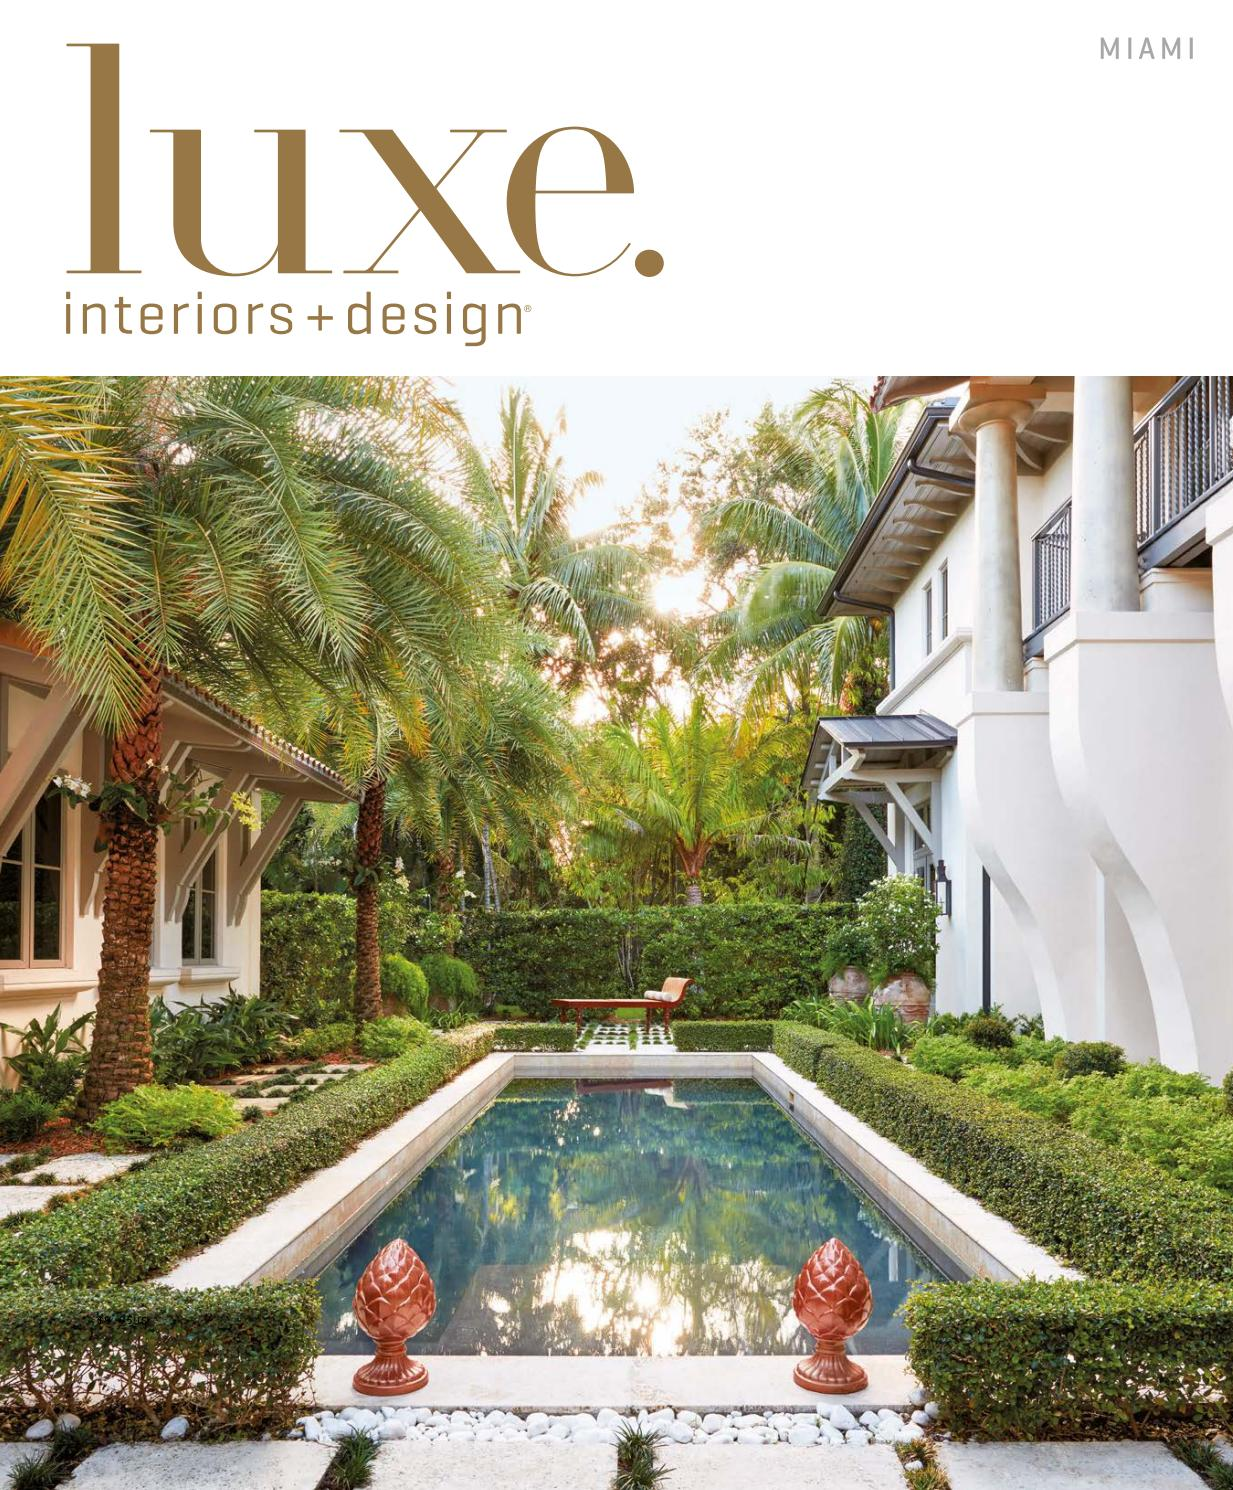 Salon De Jardin Miami Nouveau Luxe Magazine November 2016 Miami by Sandow issuu